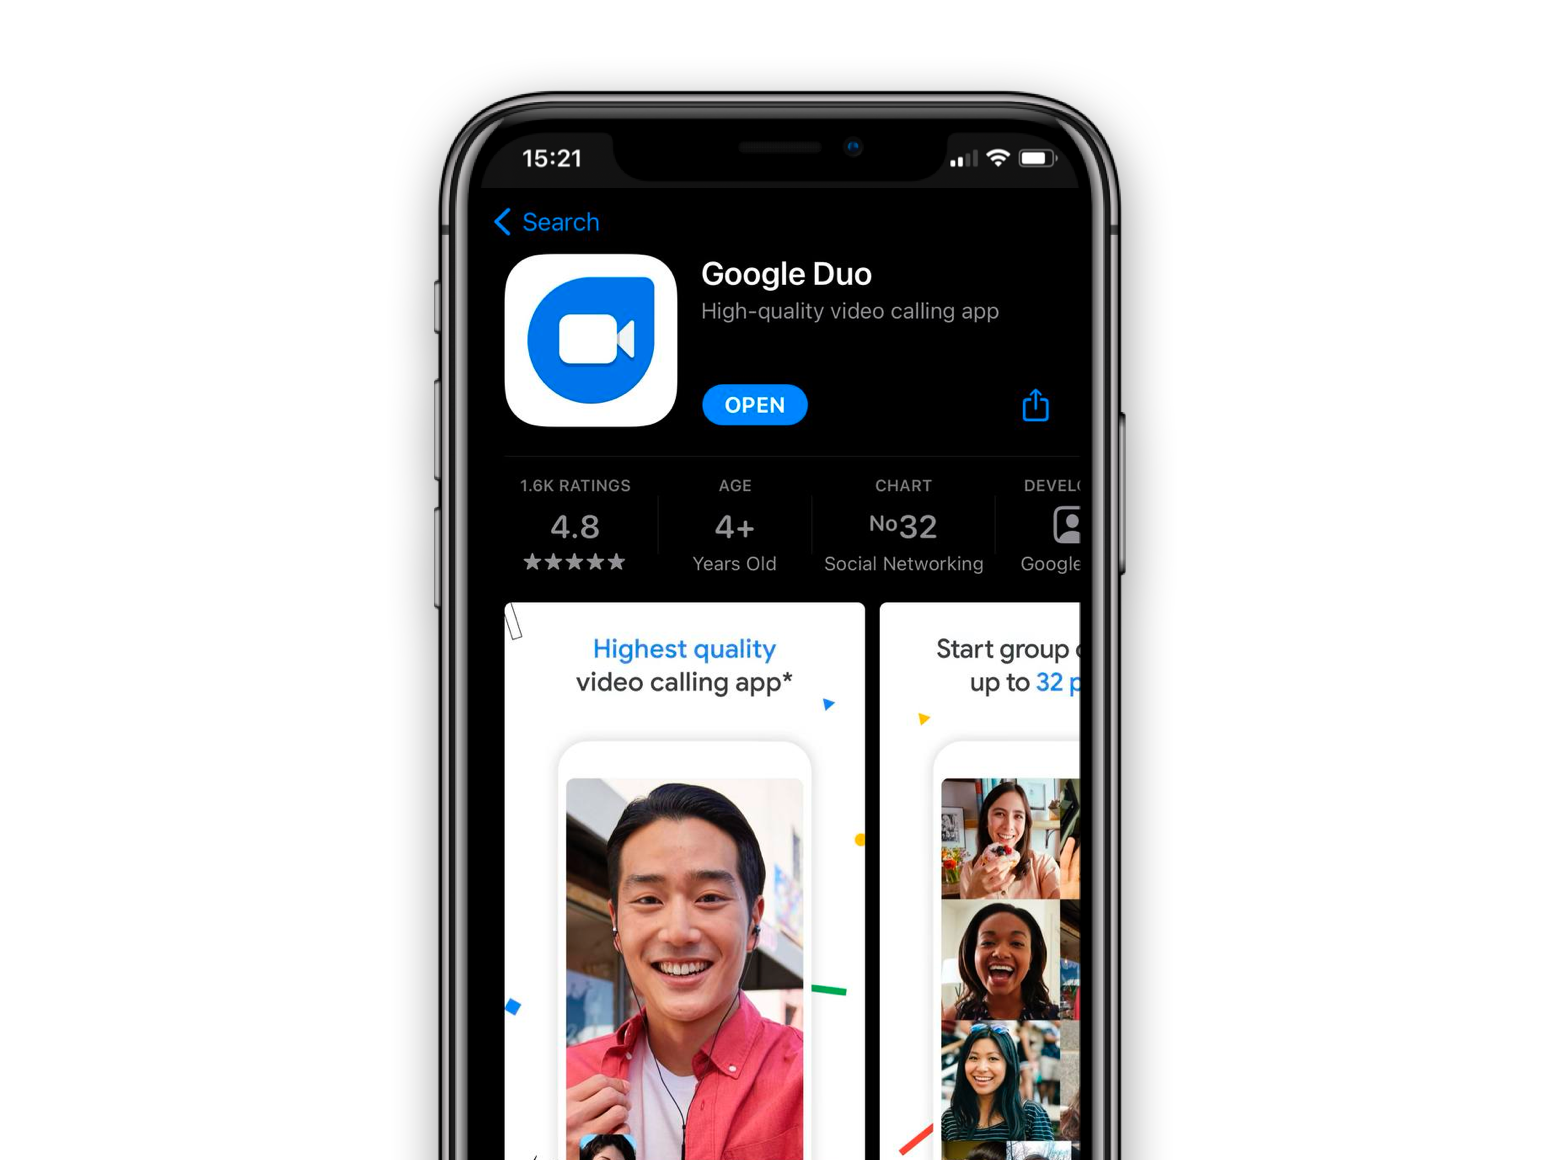 google-duo-on-iphone